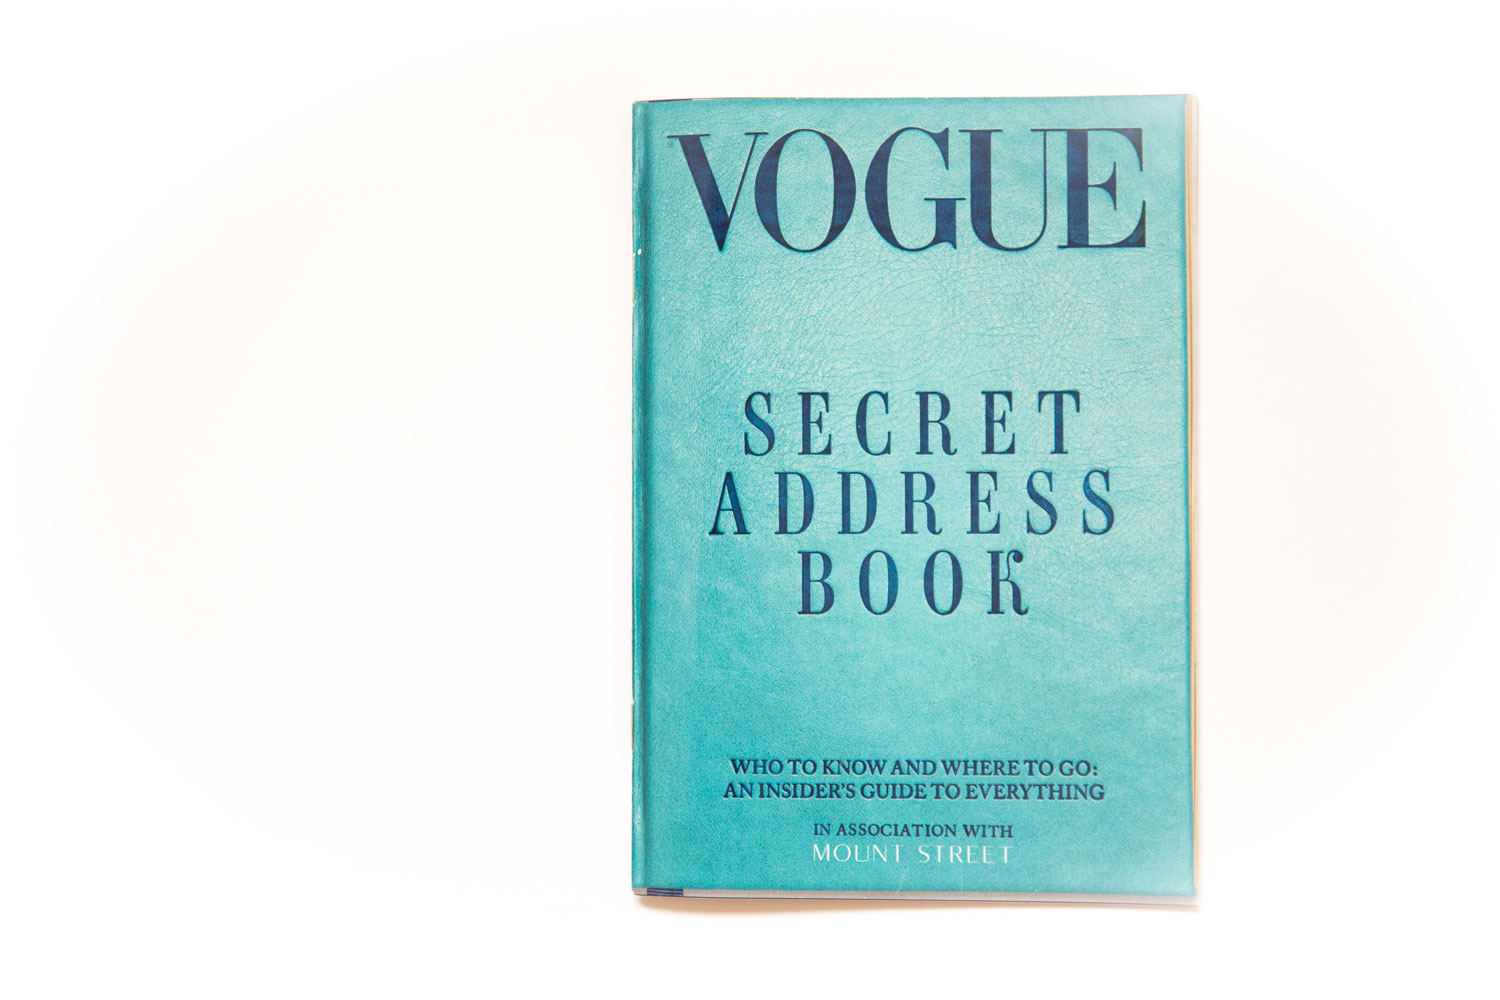 vogue secret address book, bespoke kitchens, west and reid